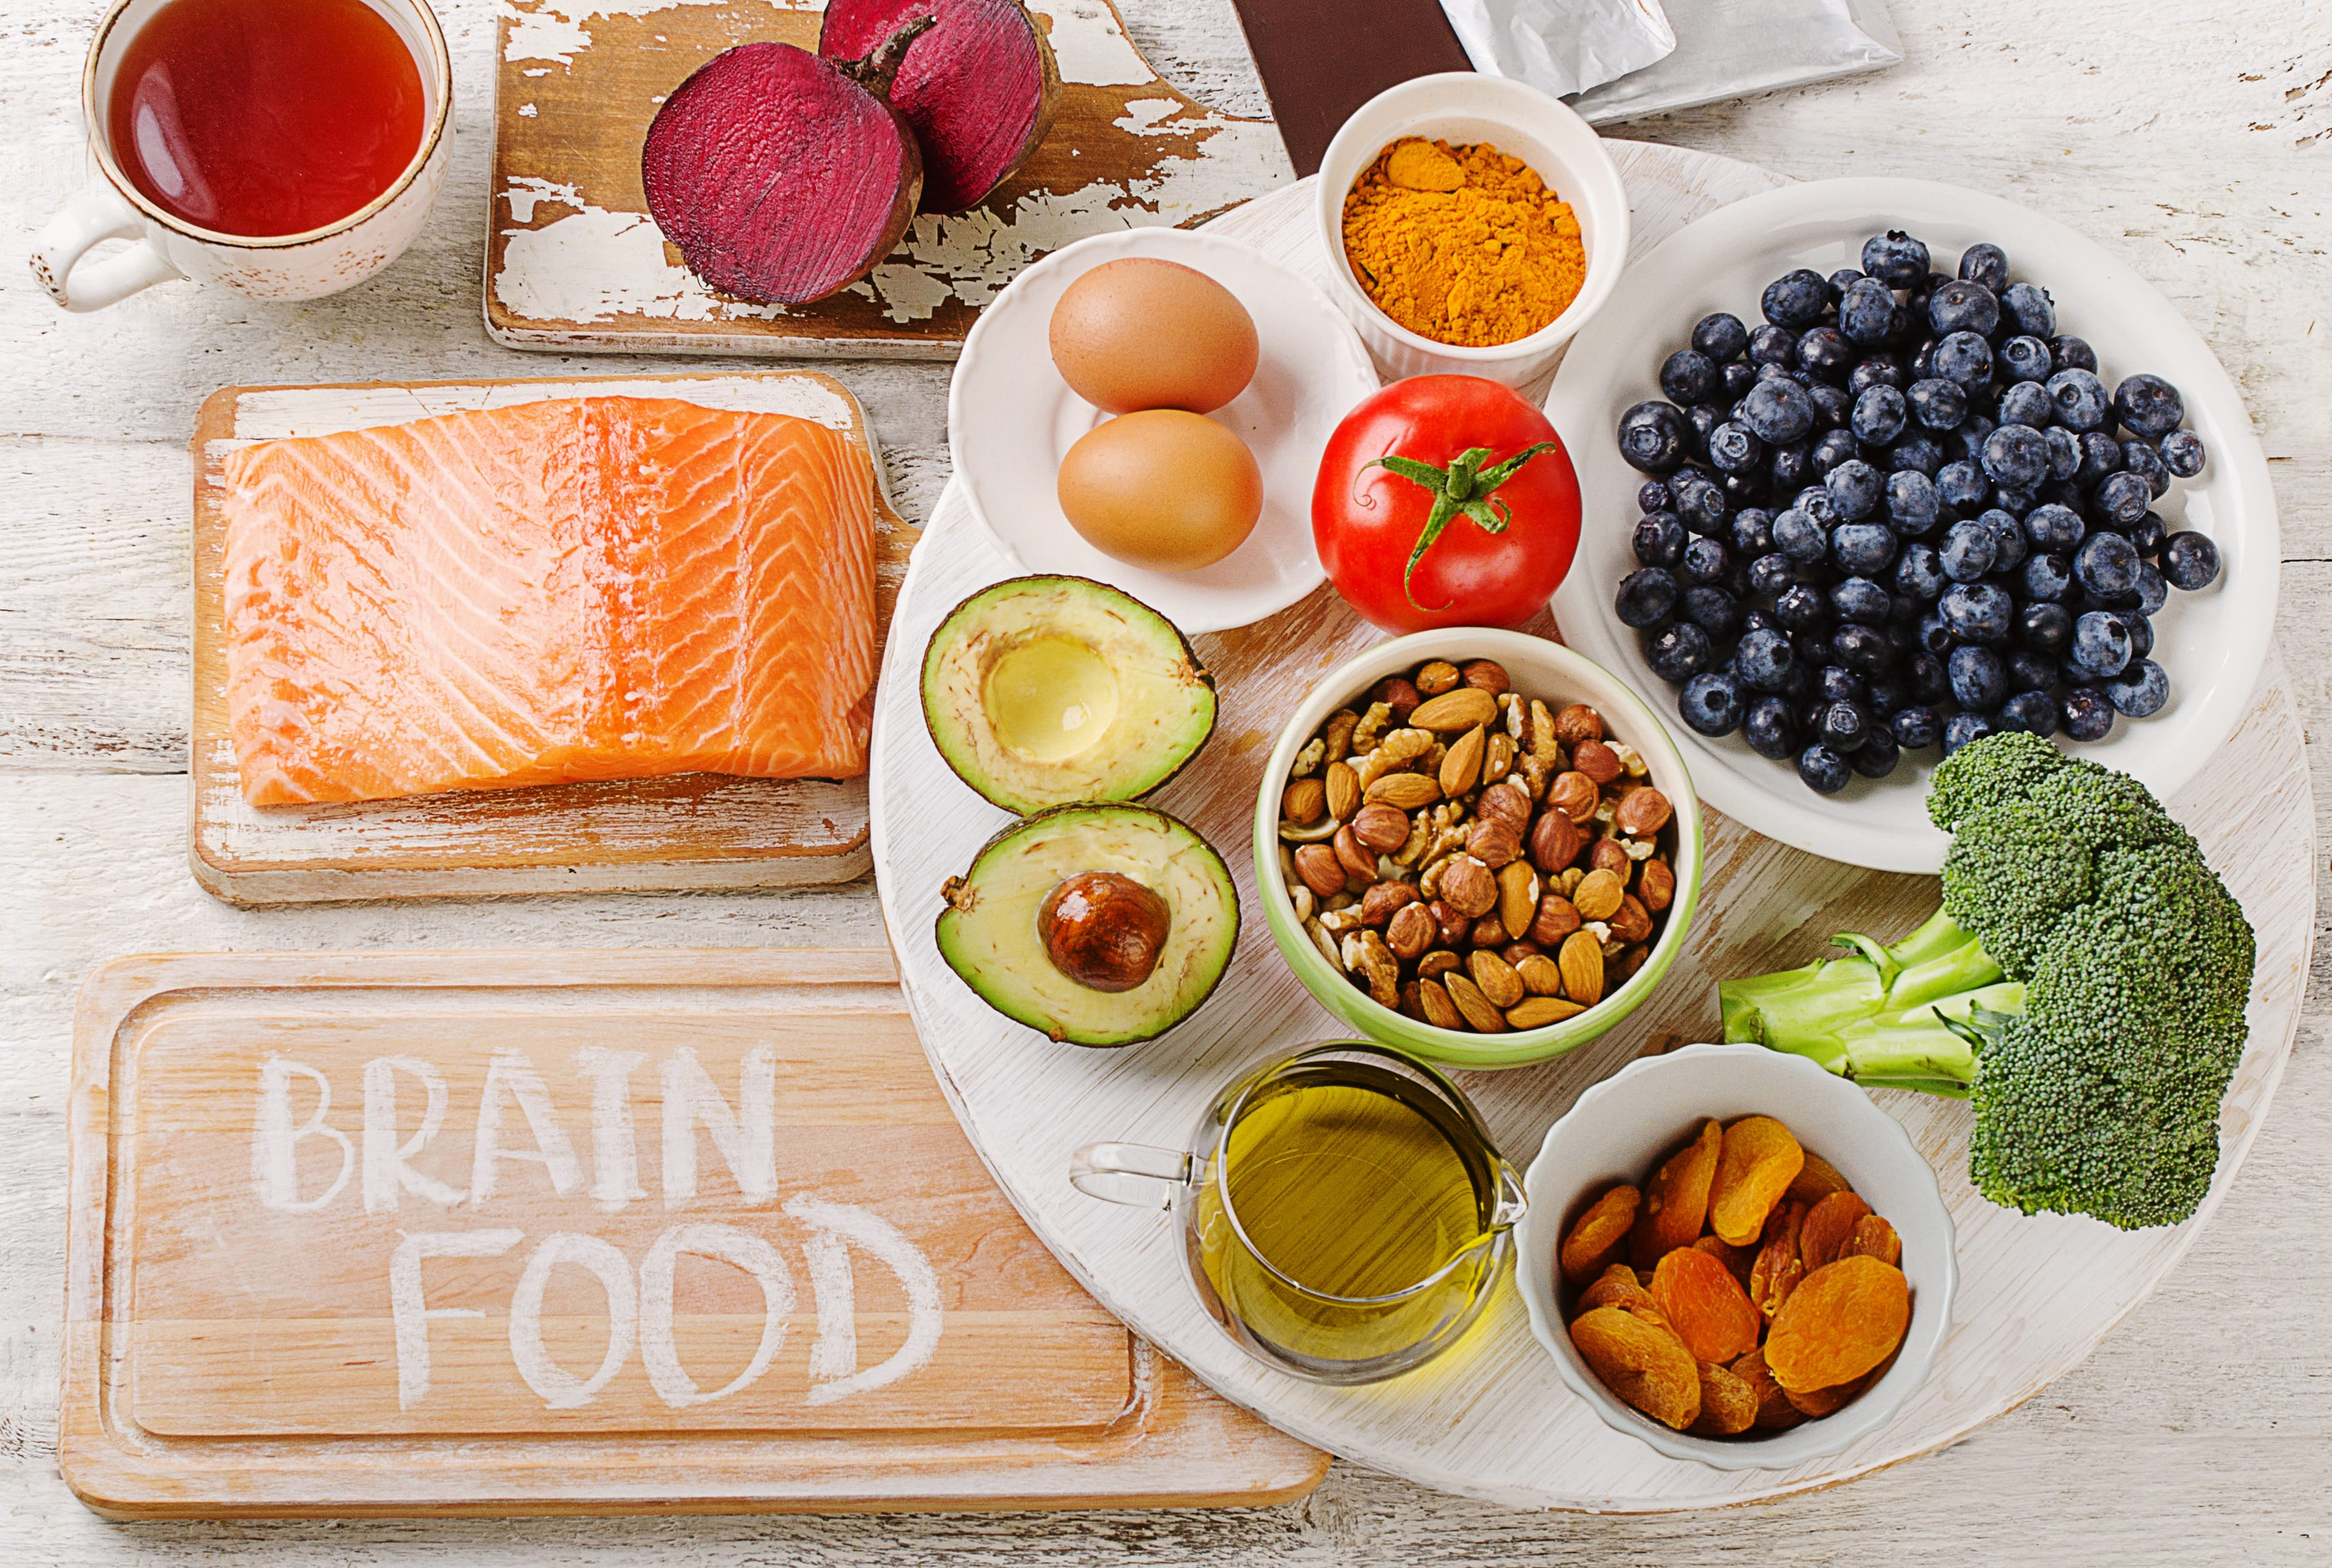 6 Foods Seniors Can Eat to Fuel Their Cognitive Function